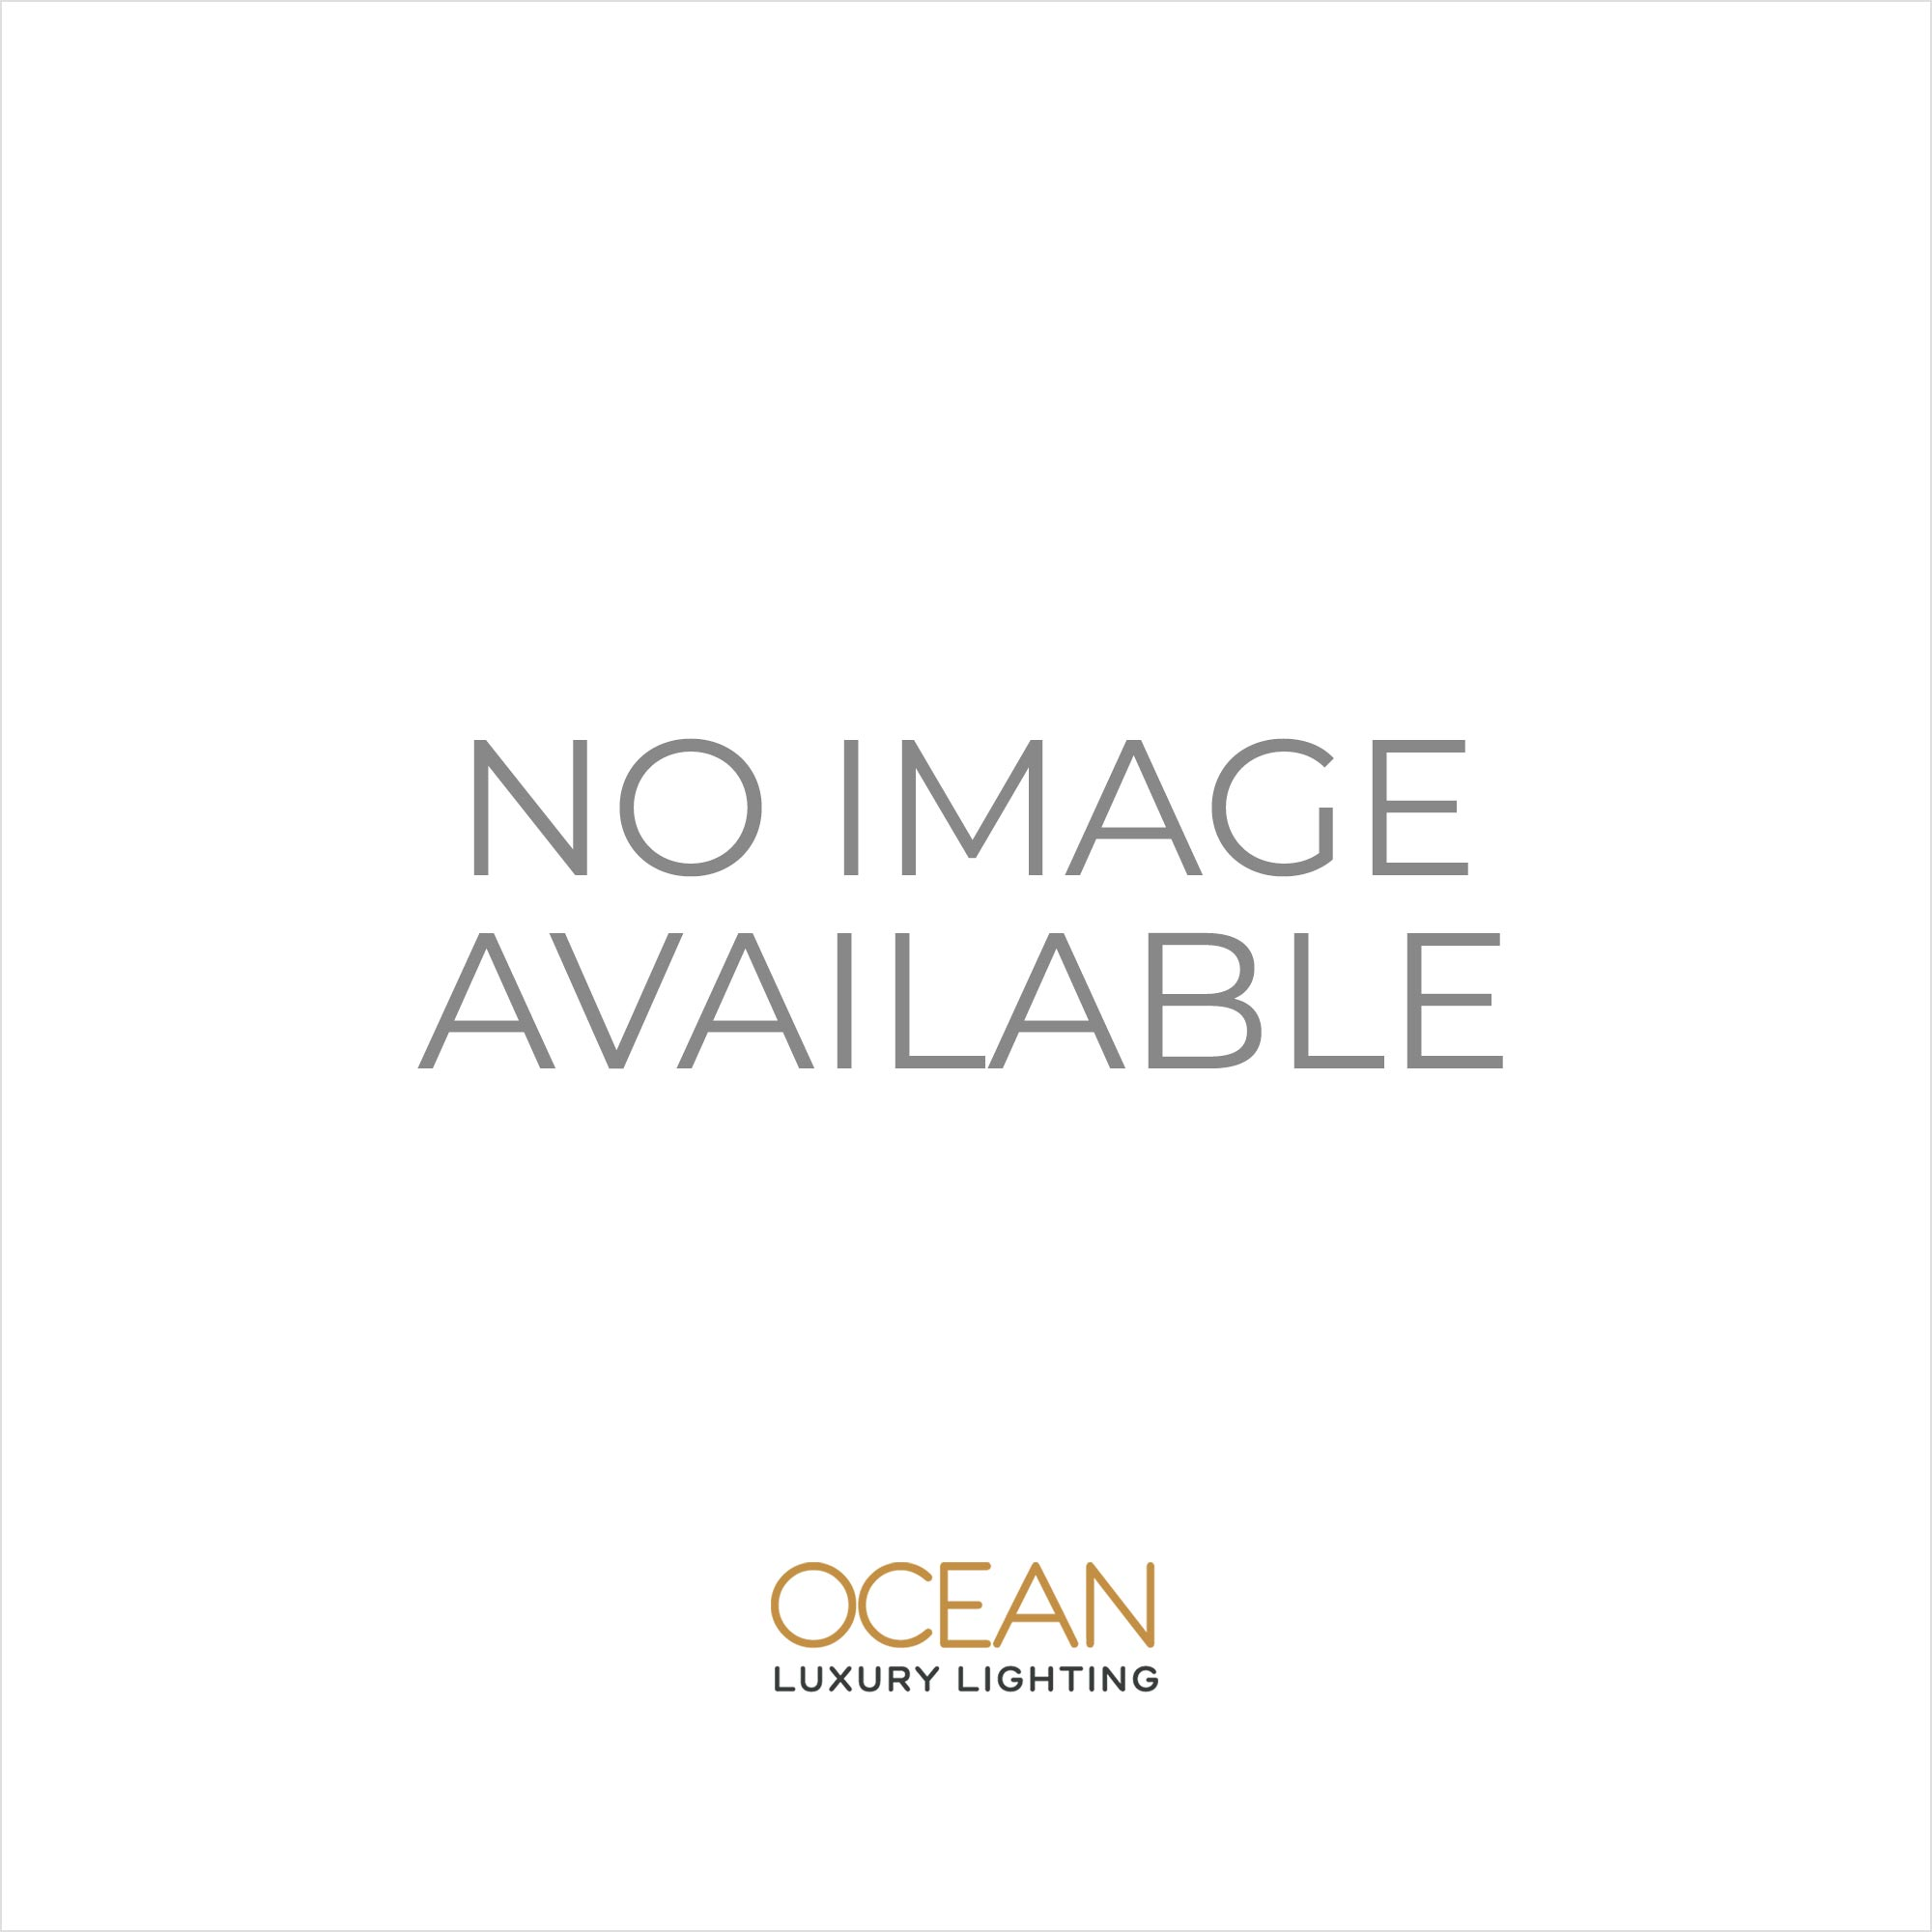 Eglo 90078 Acento 1 light modern ceiling light chrome finish with pearly/white shade